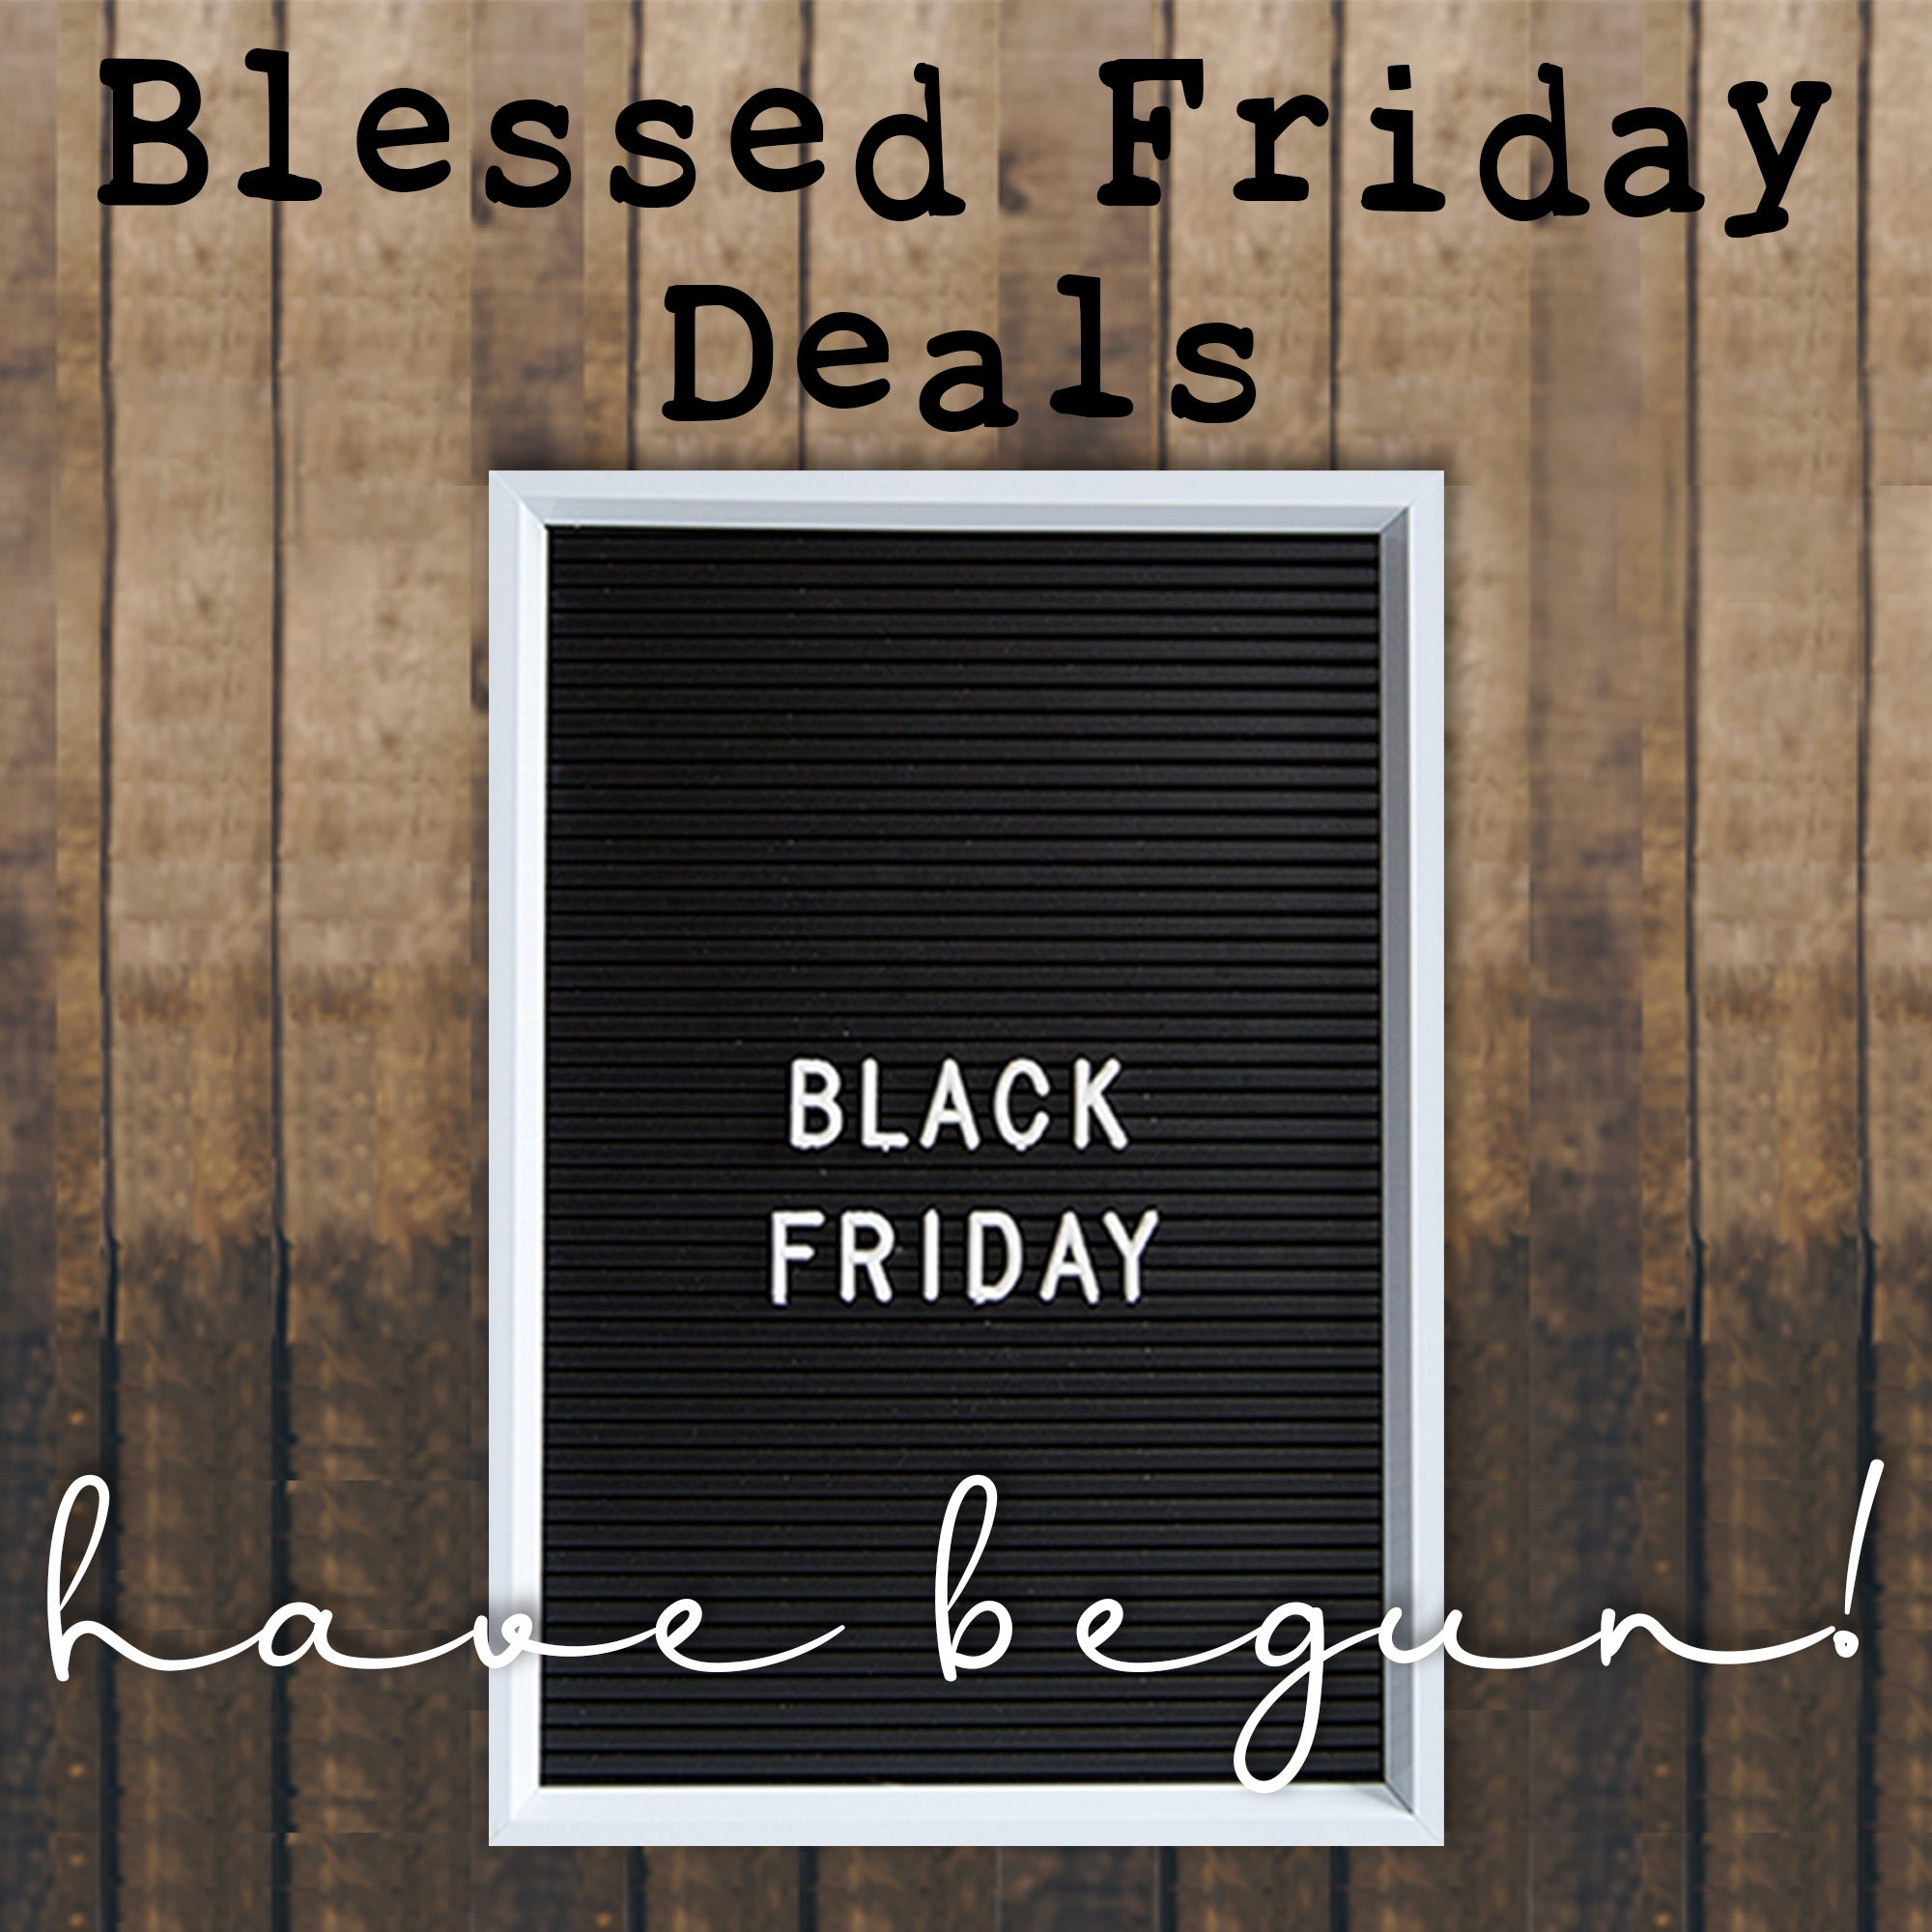 OUR BLESSED FRIDAY'S DEALS HAVE BEGUN!